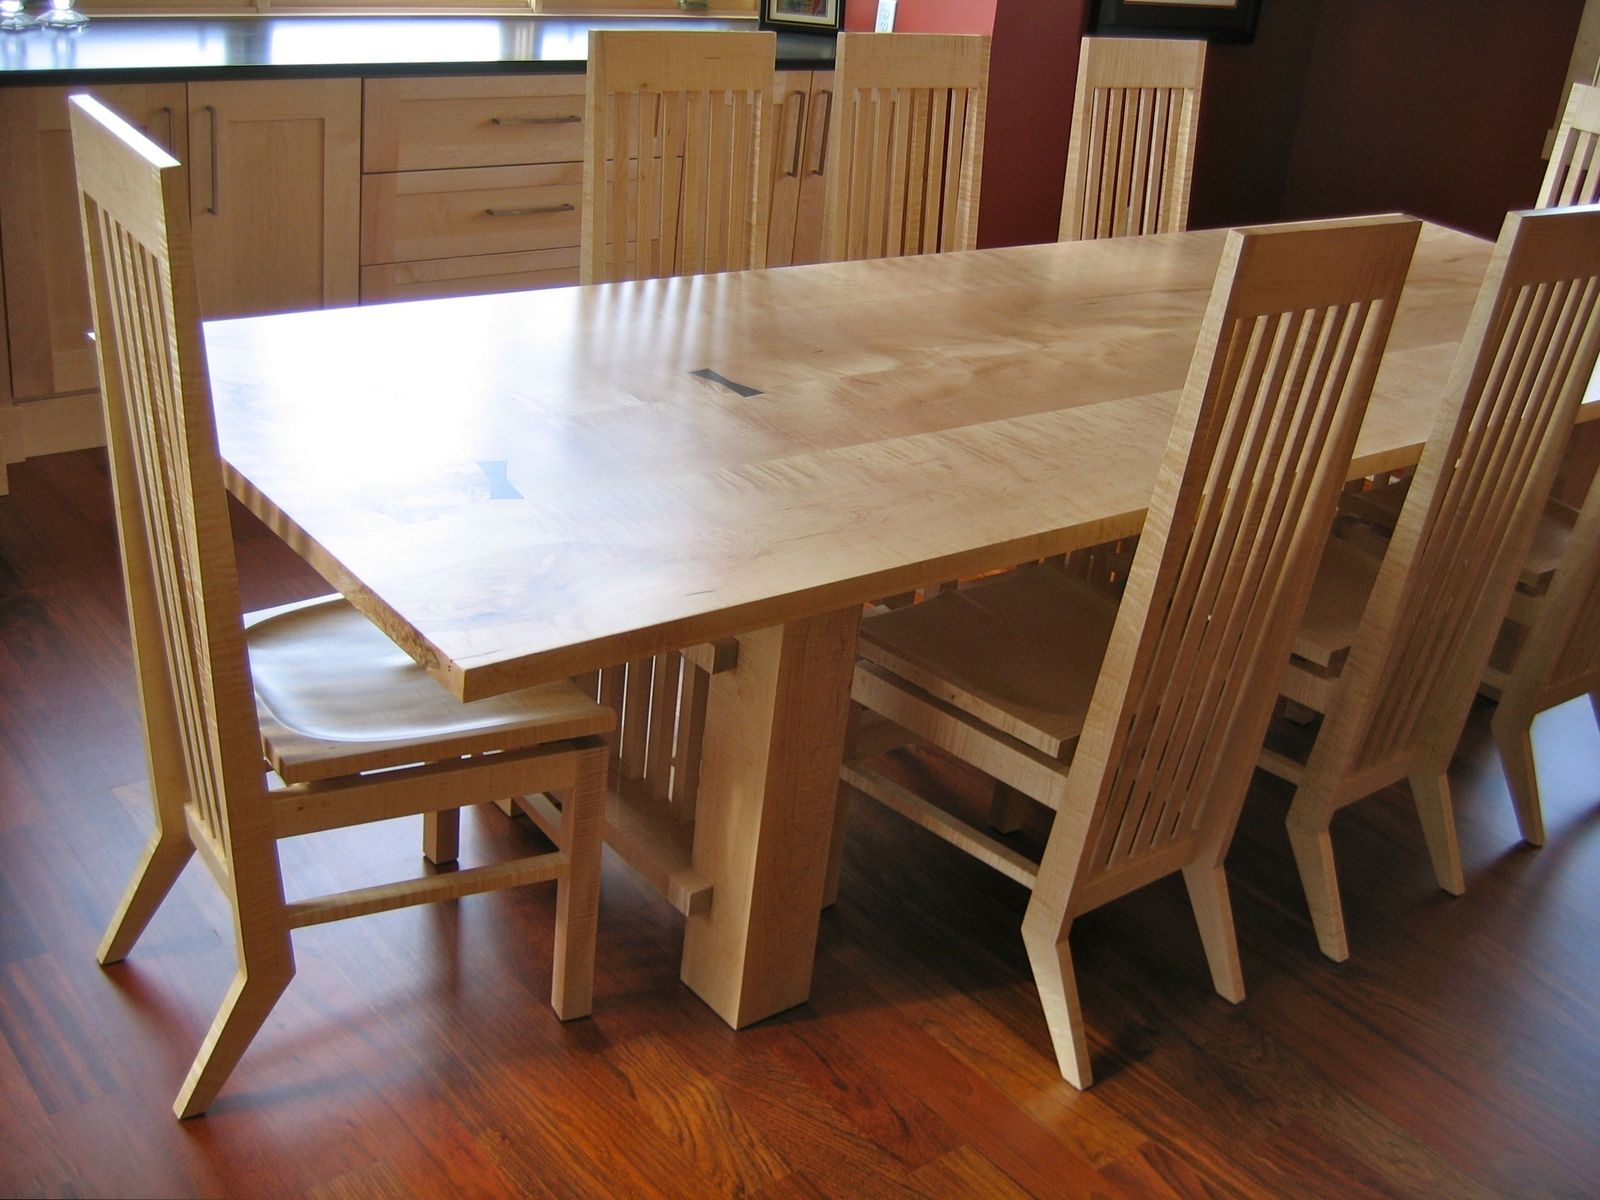 Hand Crafted Maple Dining Table By David Naso Designs